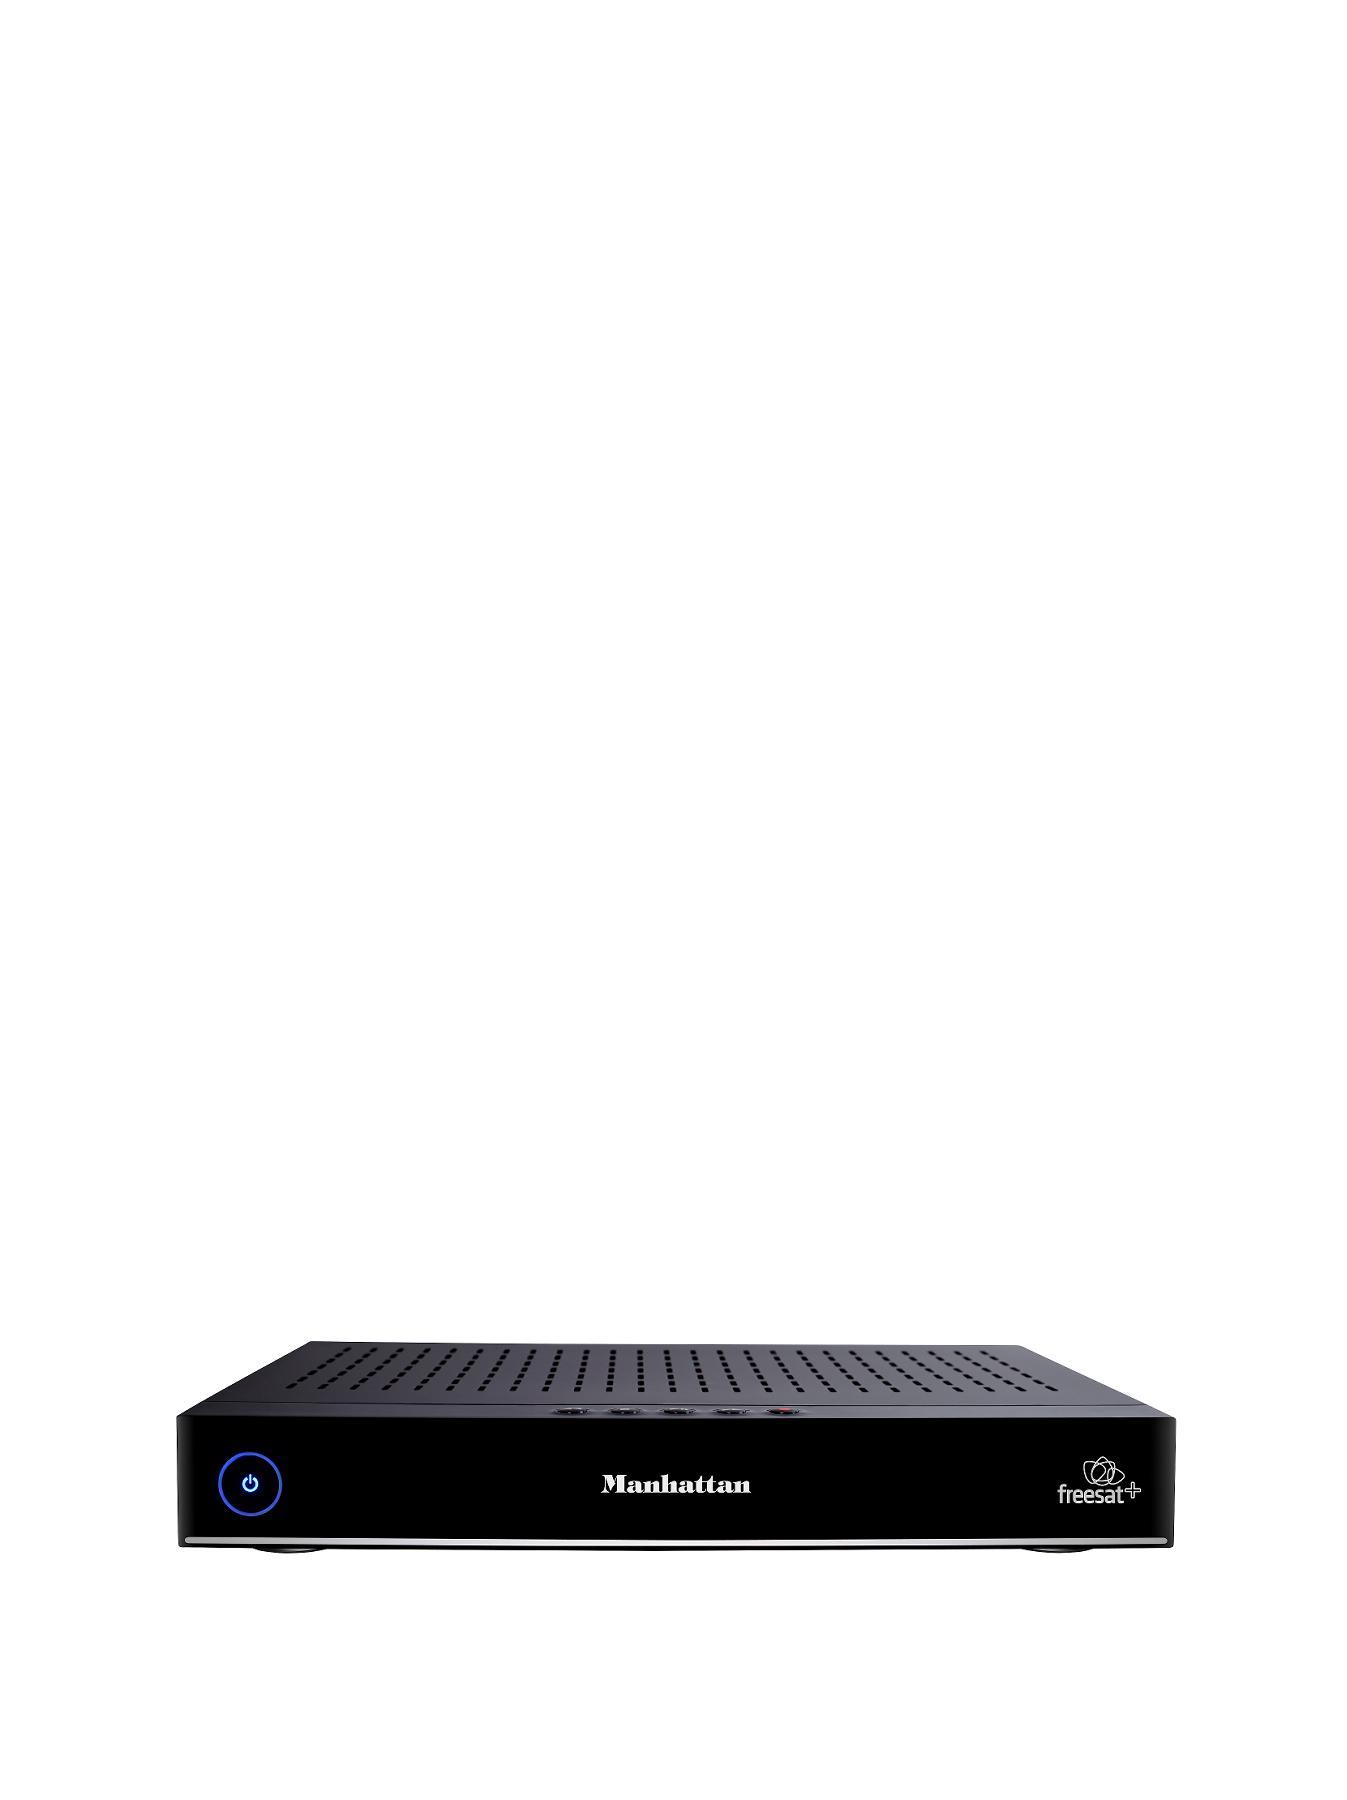 Plaza HDR-S Freesat 500Gb HD Recorder at Littlewoods